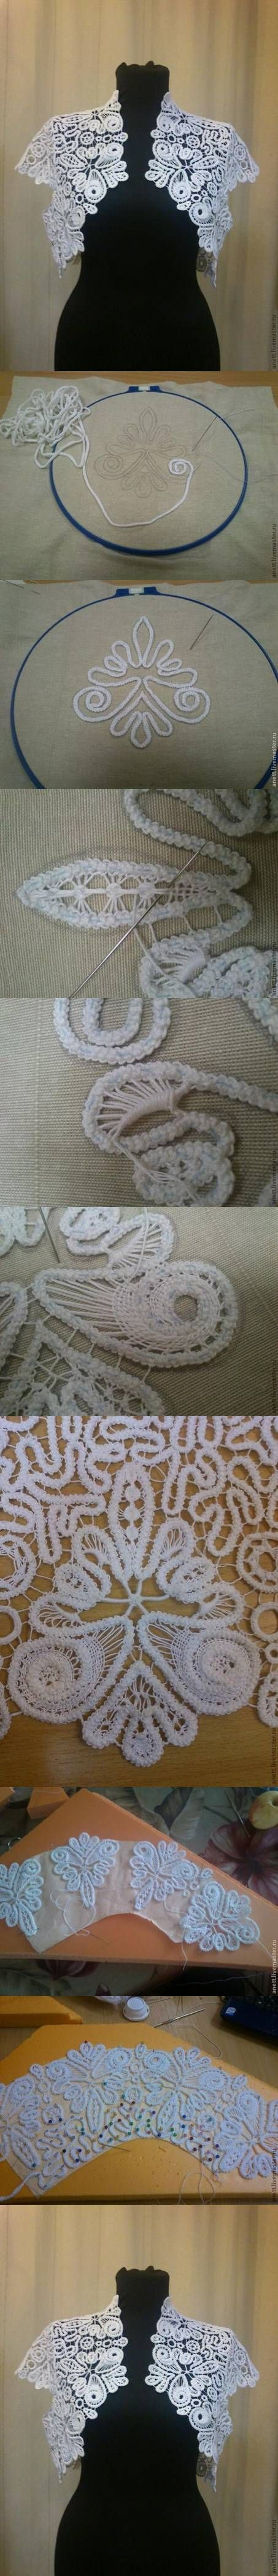 DIY Romanian Lace DIY Projects | UsefulDIY.com Follow us on Facebook ==> https://www.facebook.com/UsefulDiy